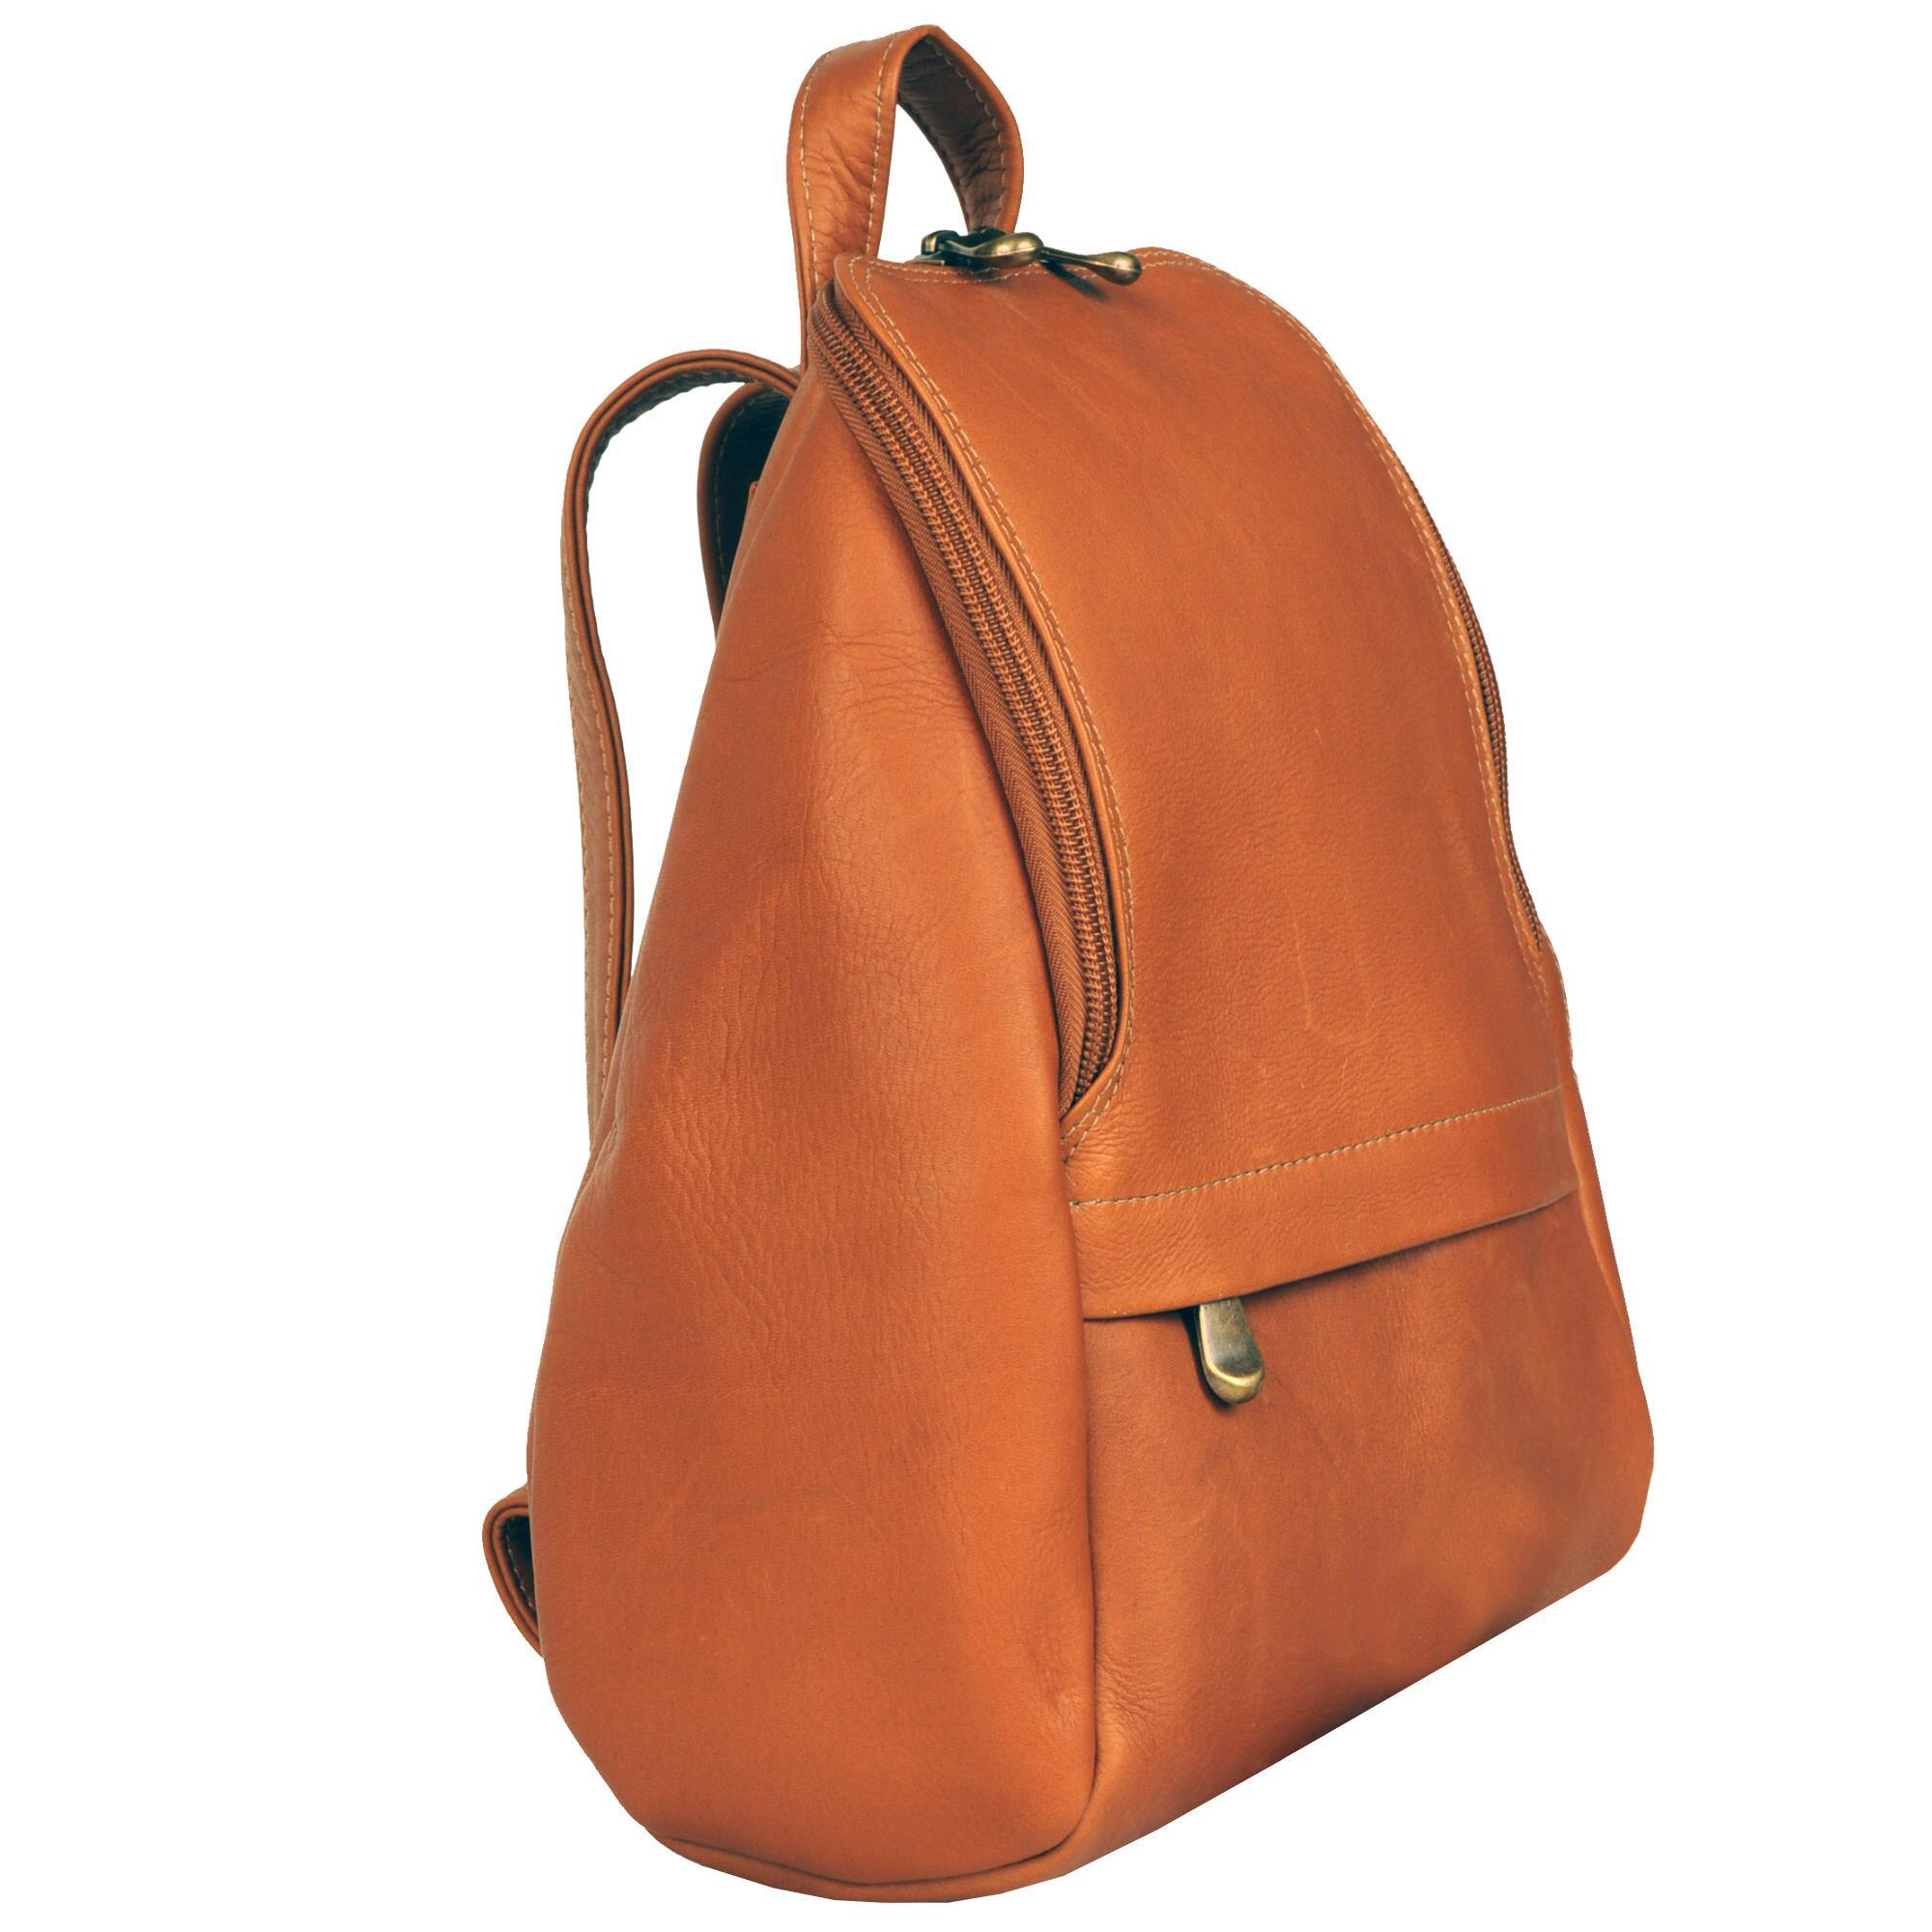 e516eef7c8 ... Le Donne Small Top Round Zip Leather Backpack - Lyst. View fullscreen